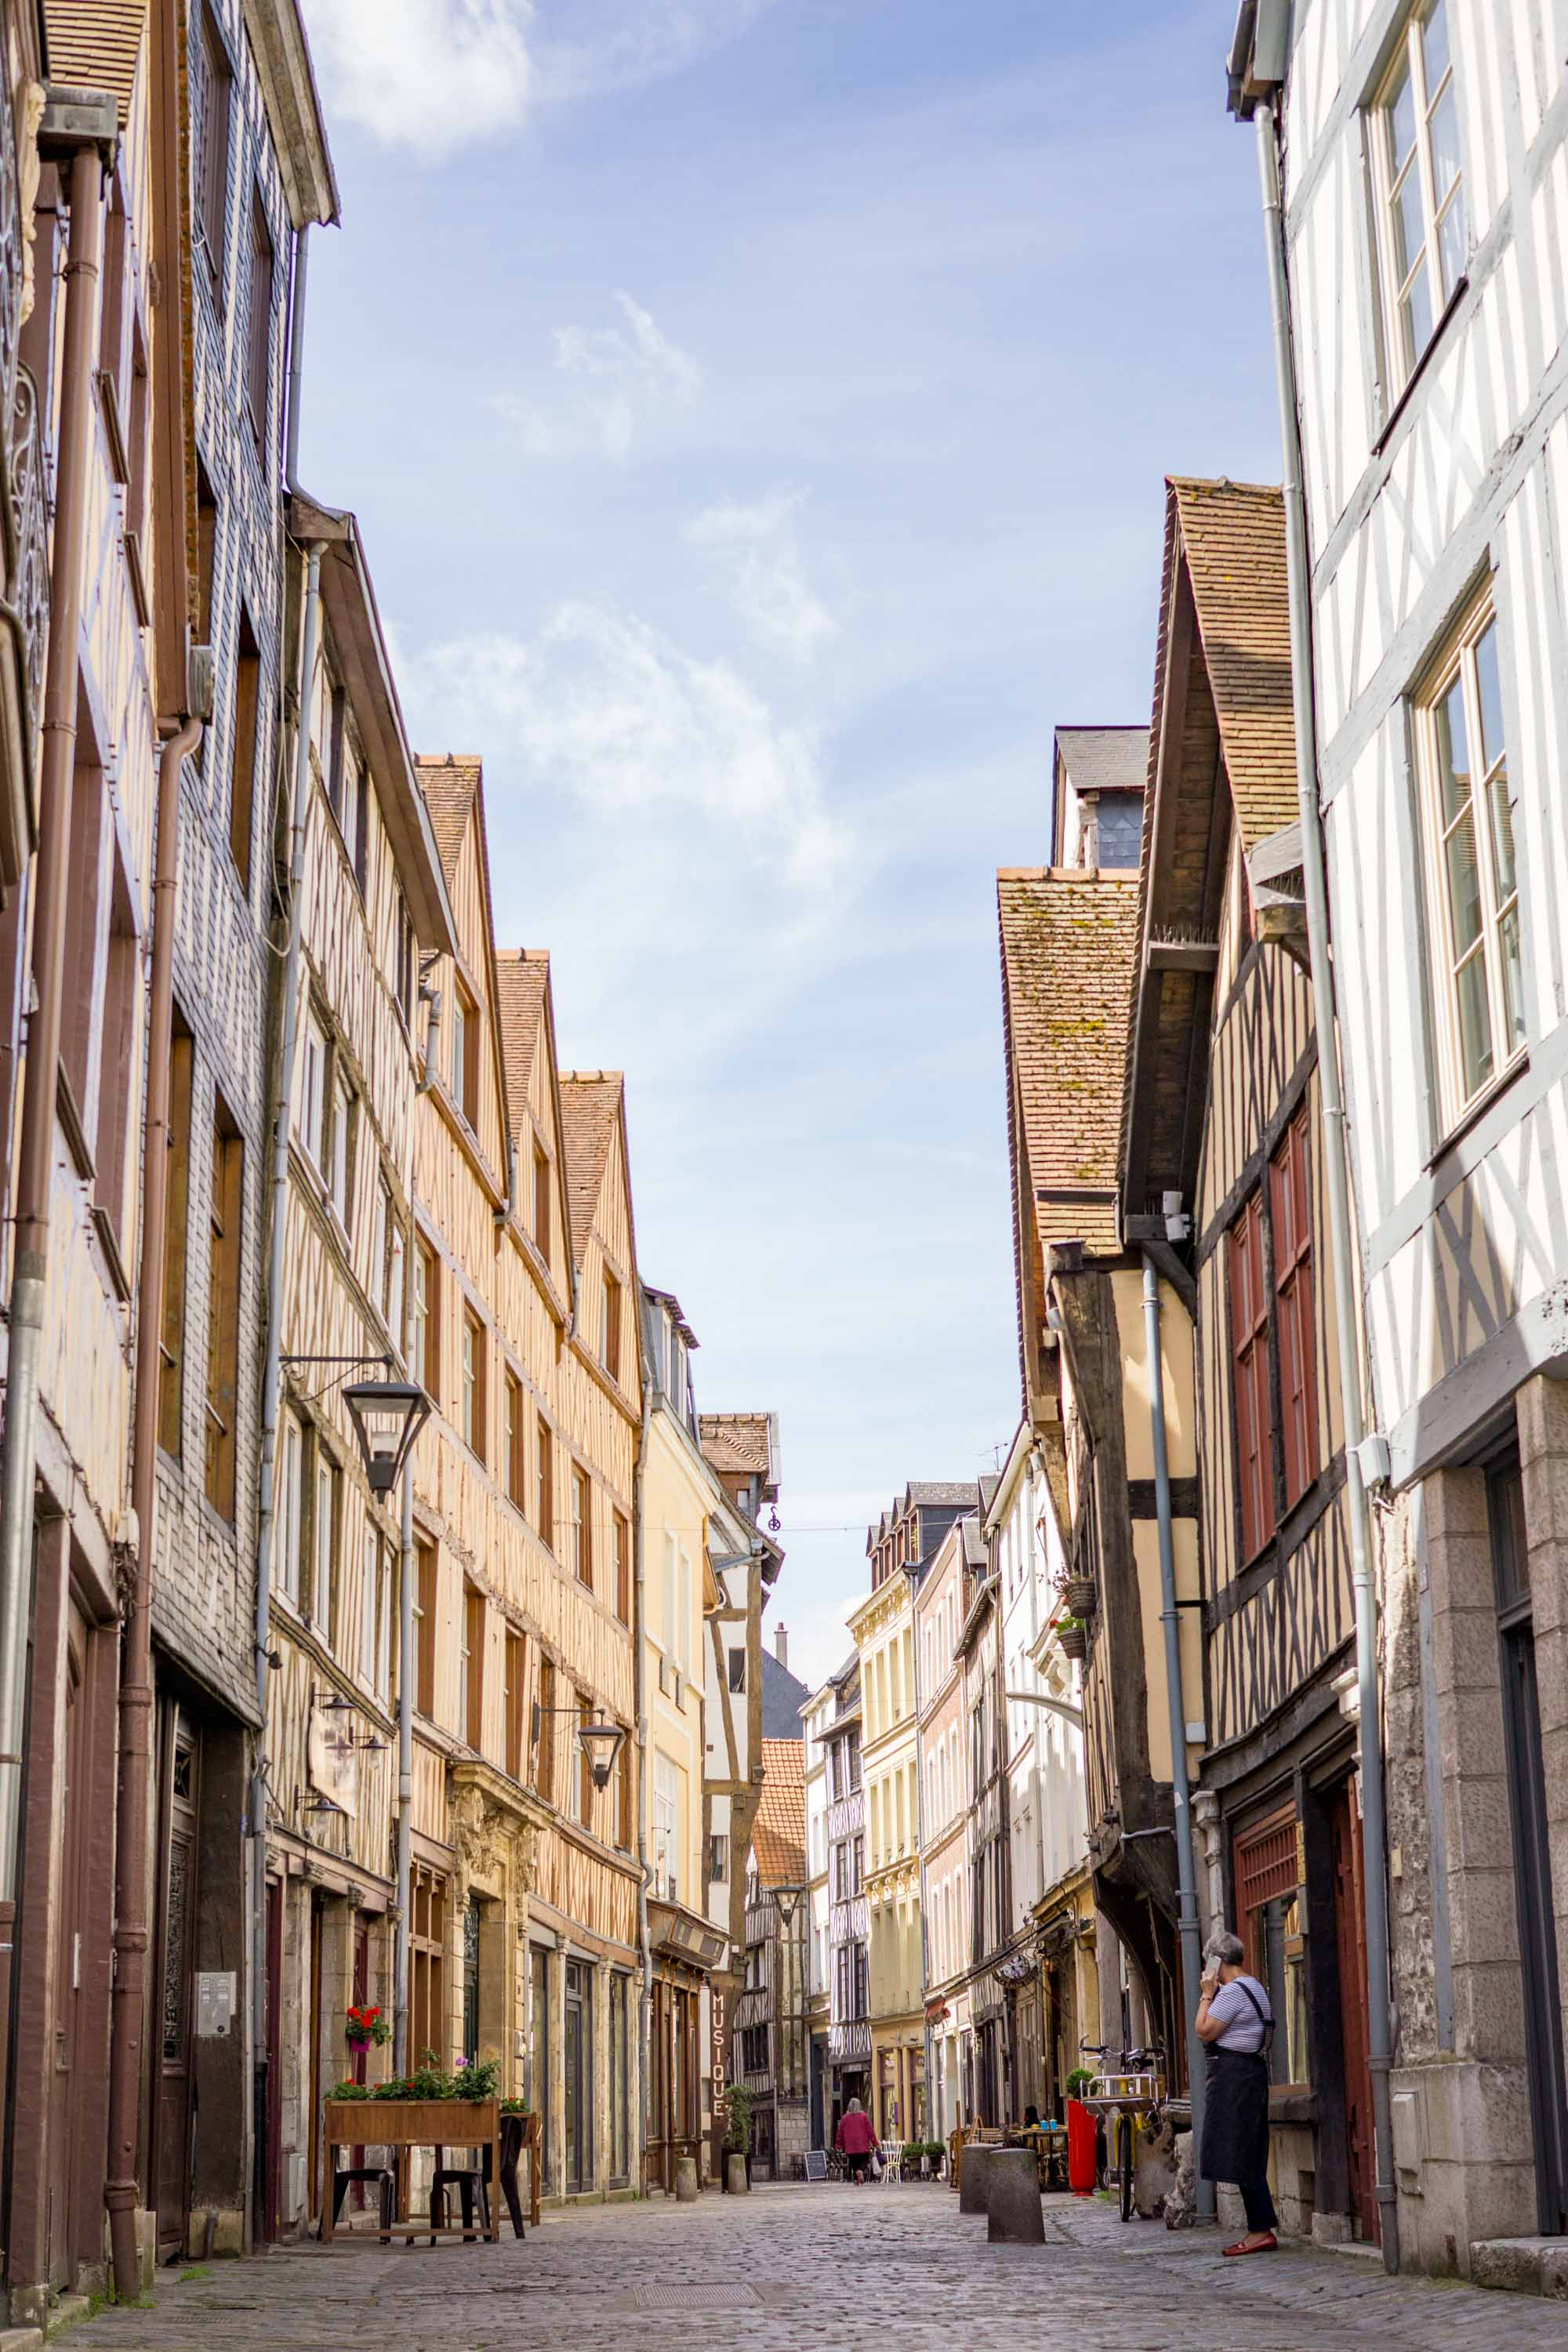 Fancy a day trip from Paris? Discover how to spend a wonderful day in Rouen, France with this useful travel guide.